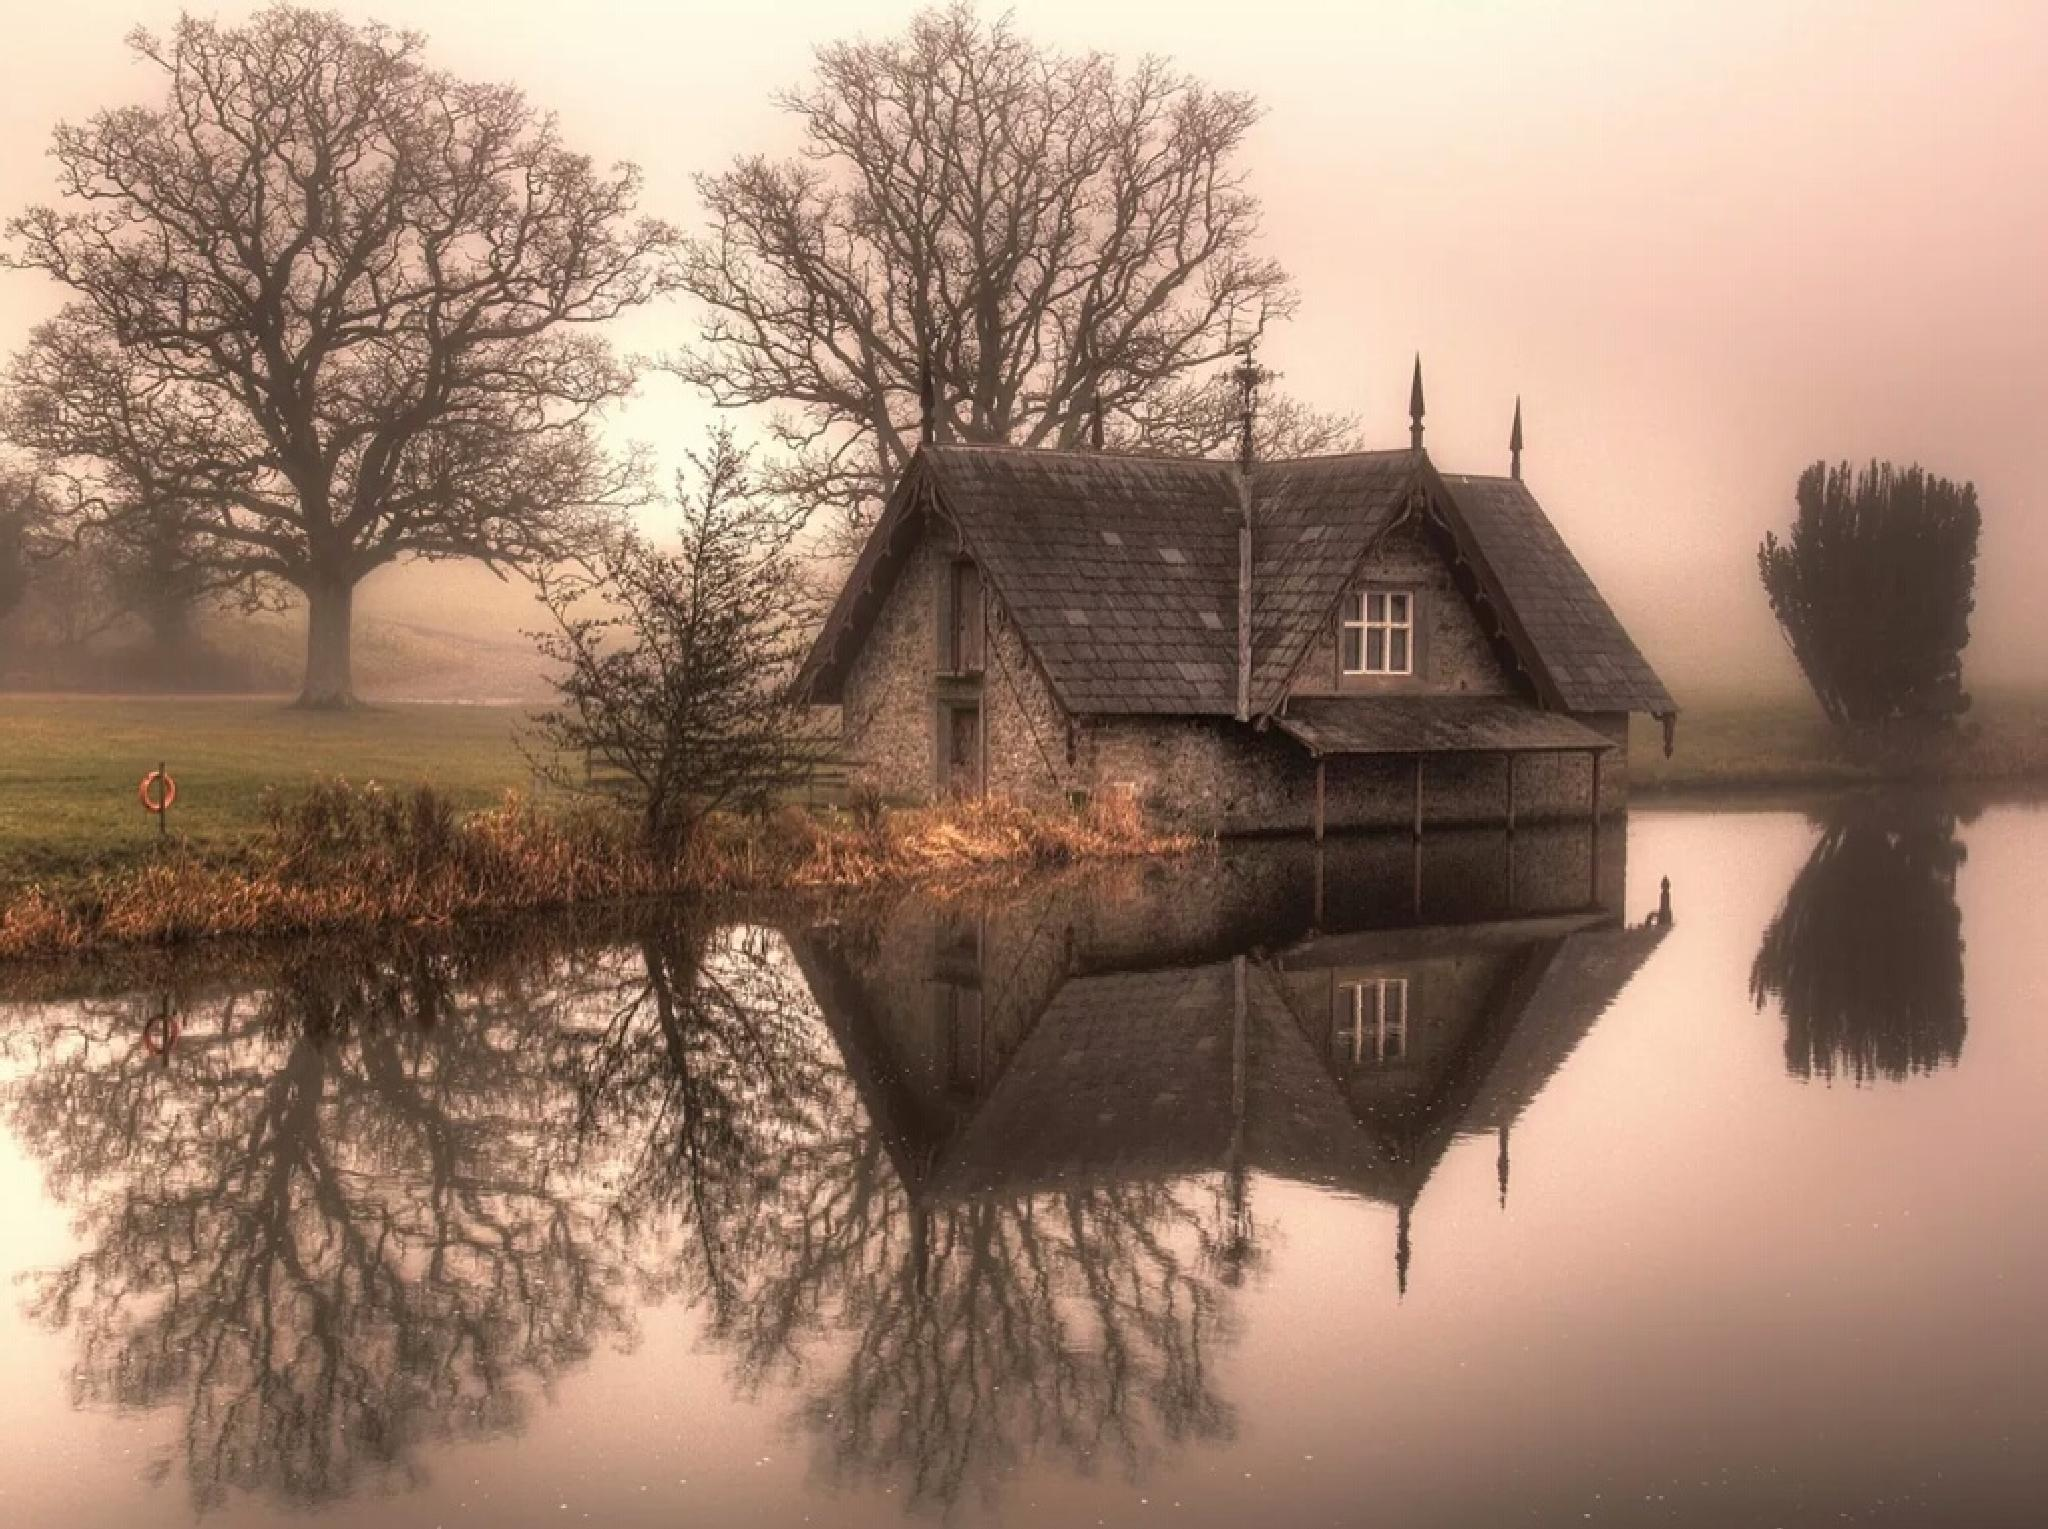 A foggy morning at the Boathouse  by BALRATH PHOTOGRAPHY